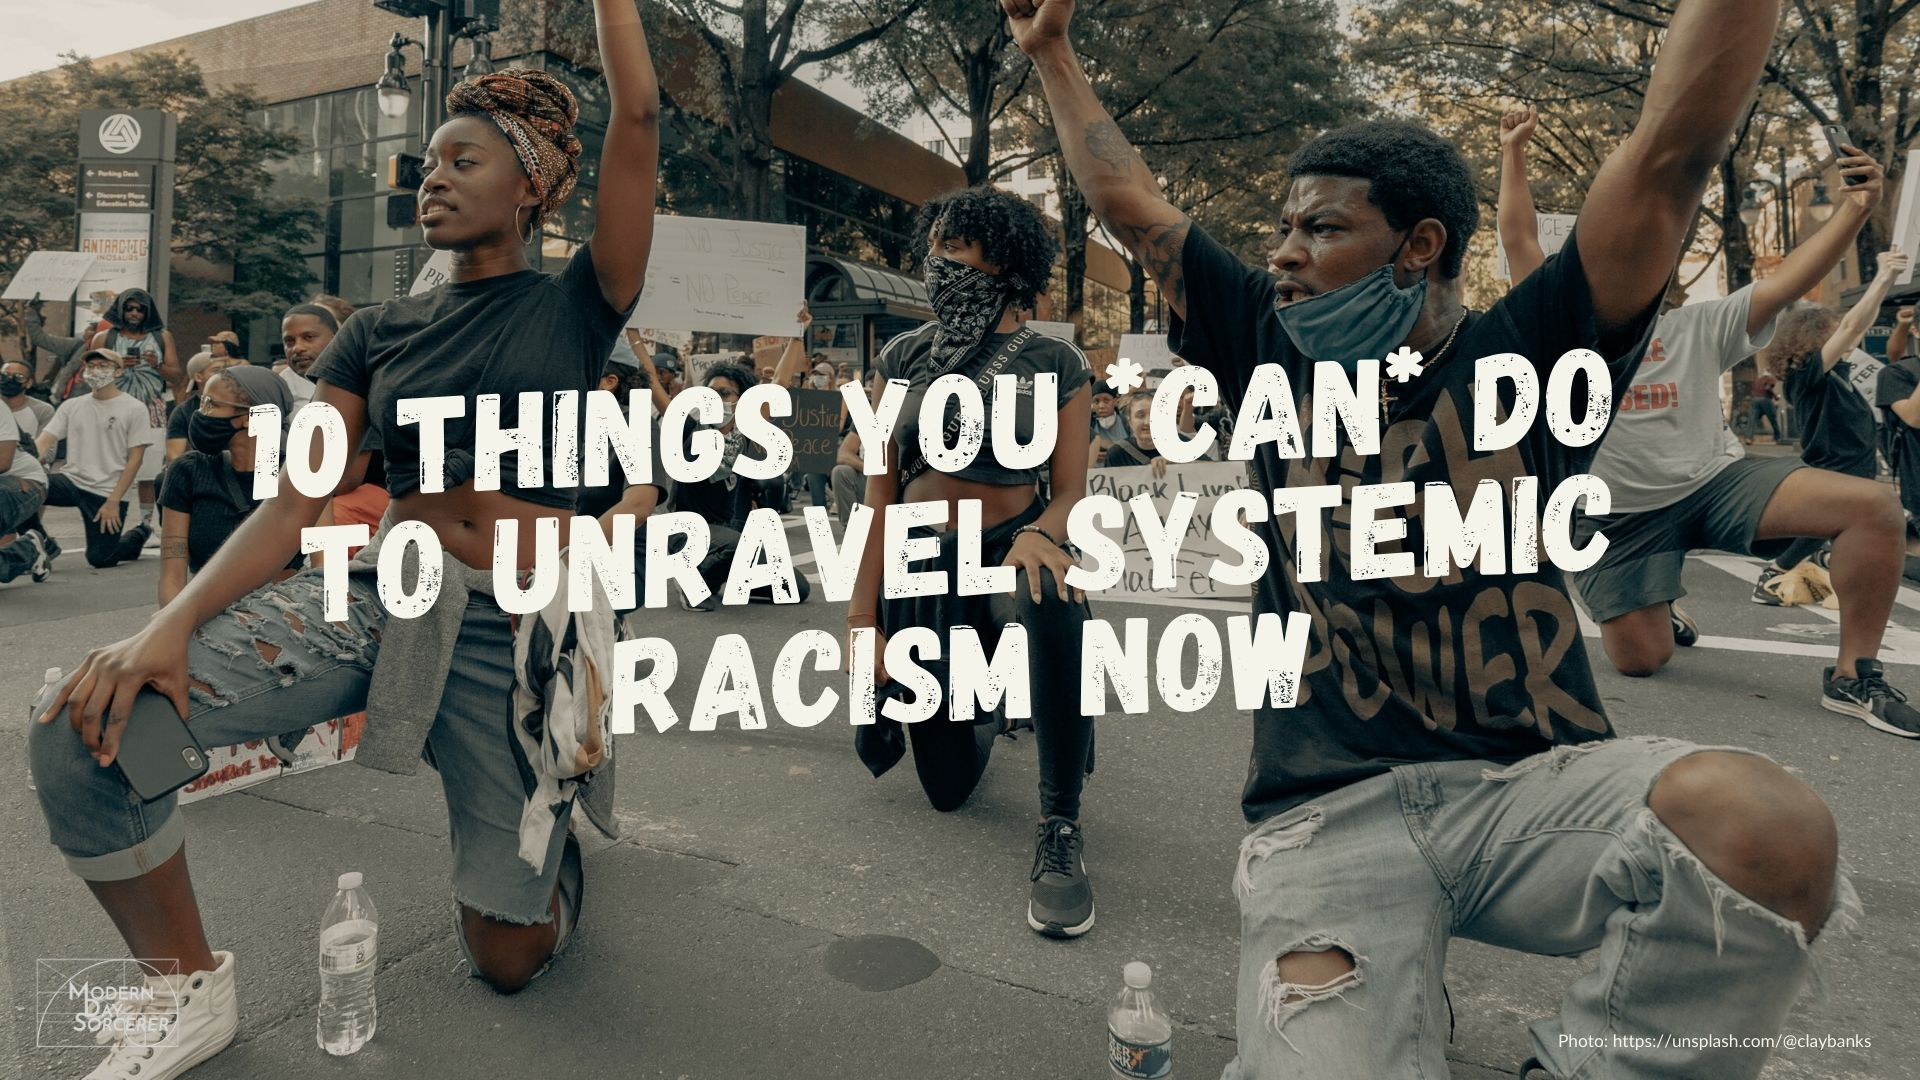 unravel systemic racism